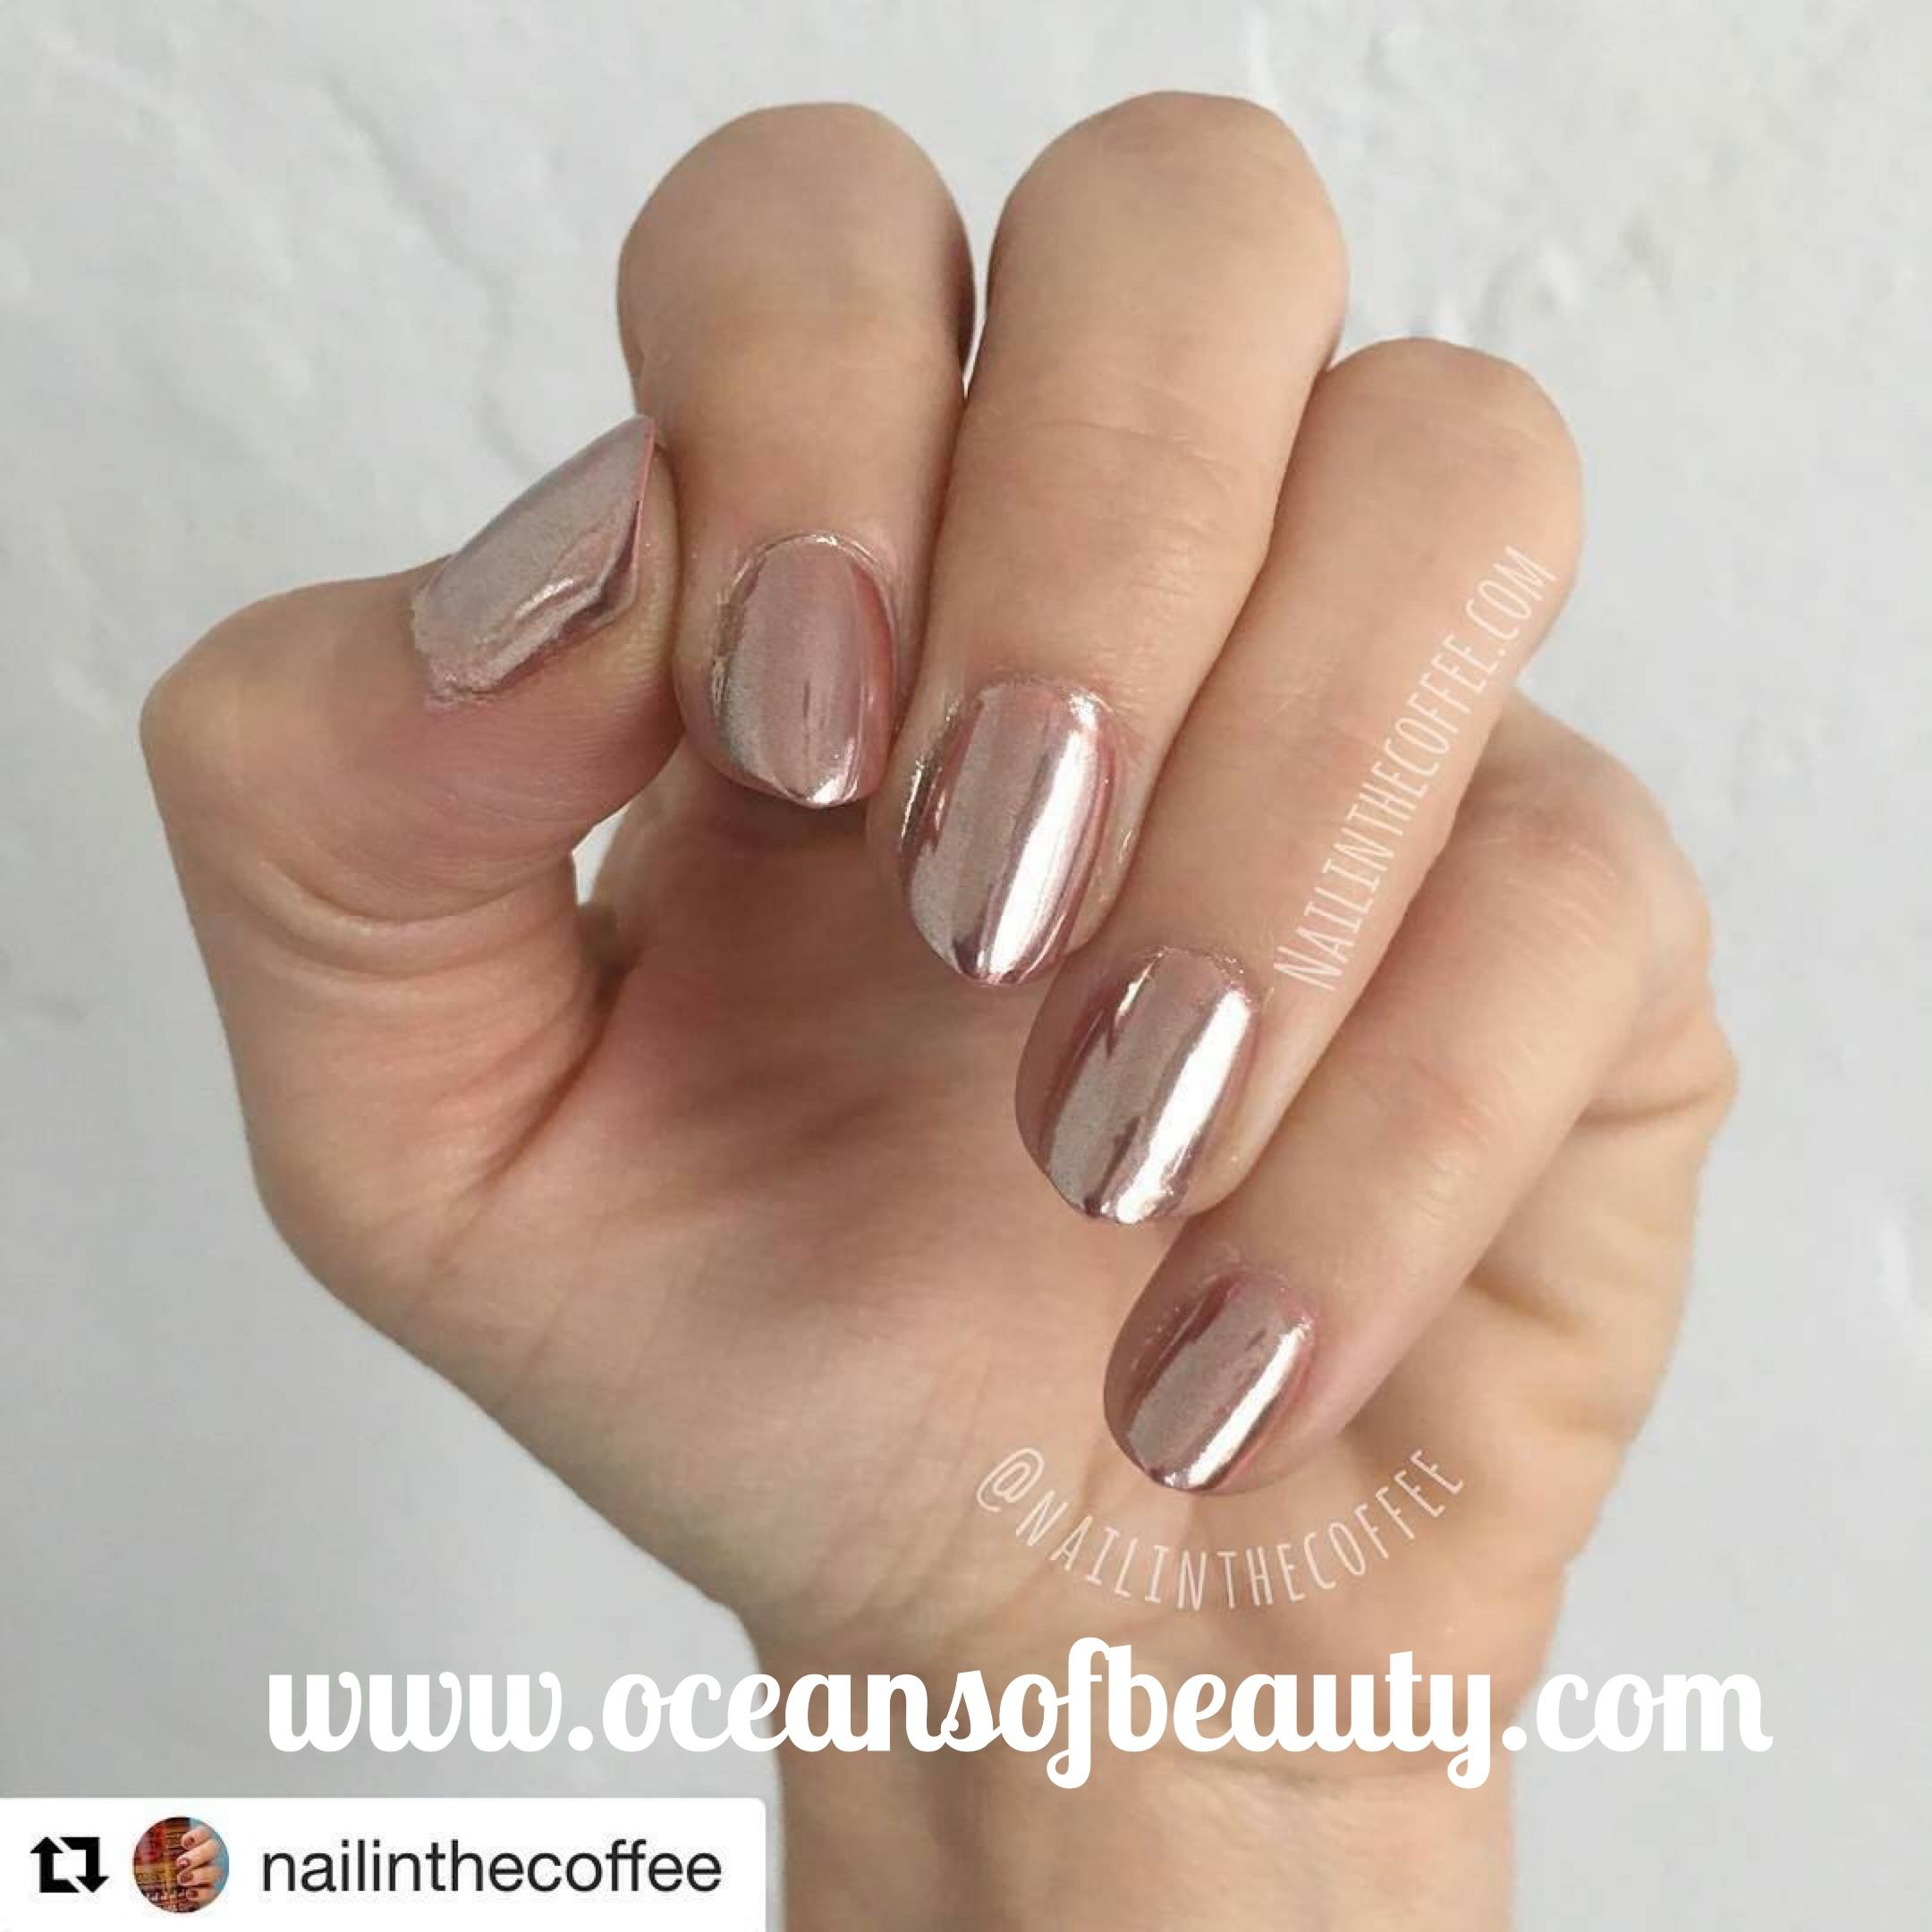 Rose Gold Powder from OceansofBeauty.com Salon Quality done right in ...